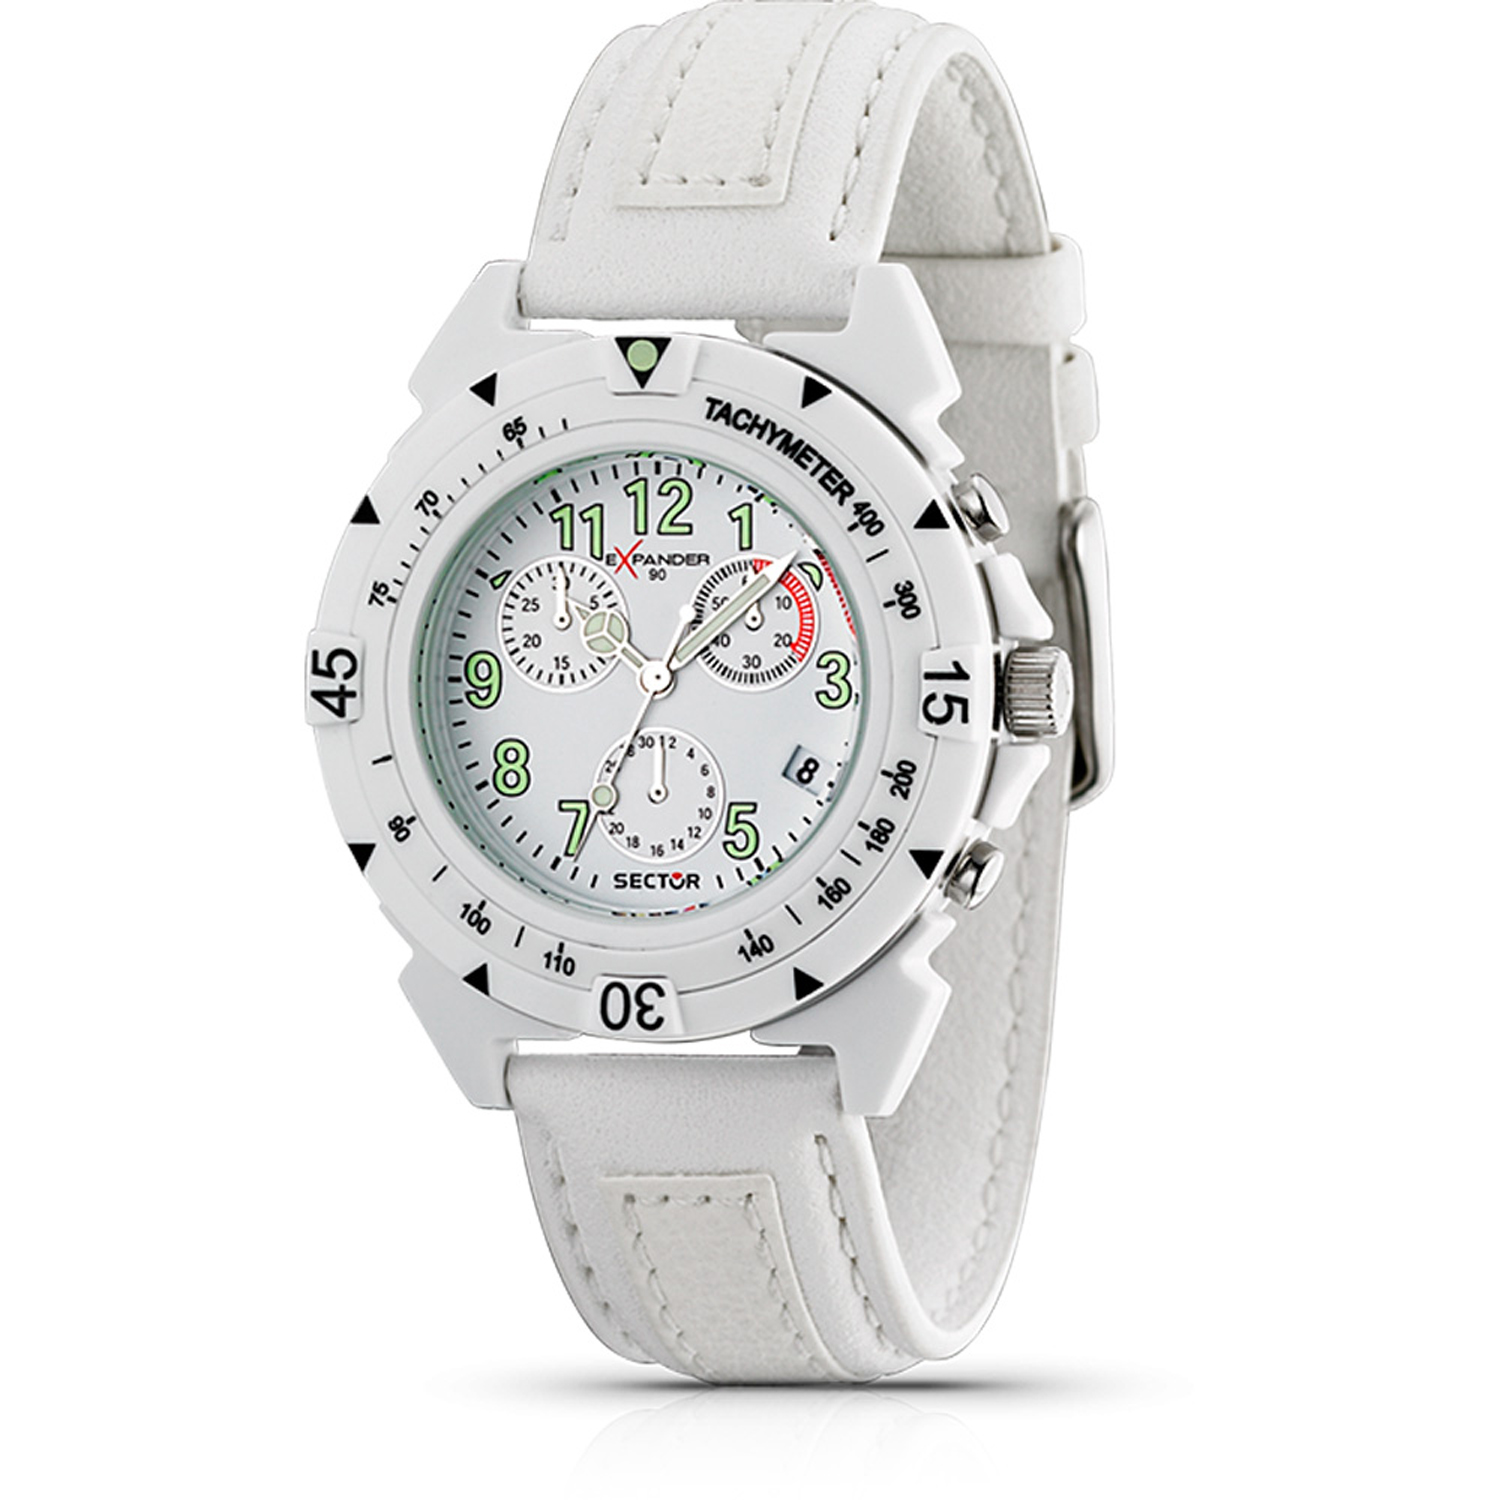 Sector 3271697045 Sector Expander Swiss Chronogrpah Watch Dial White Leather Strap